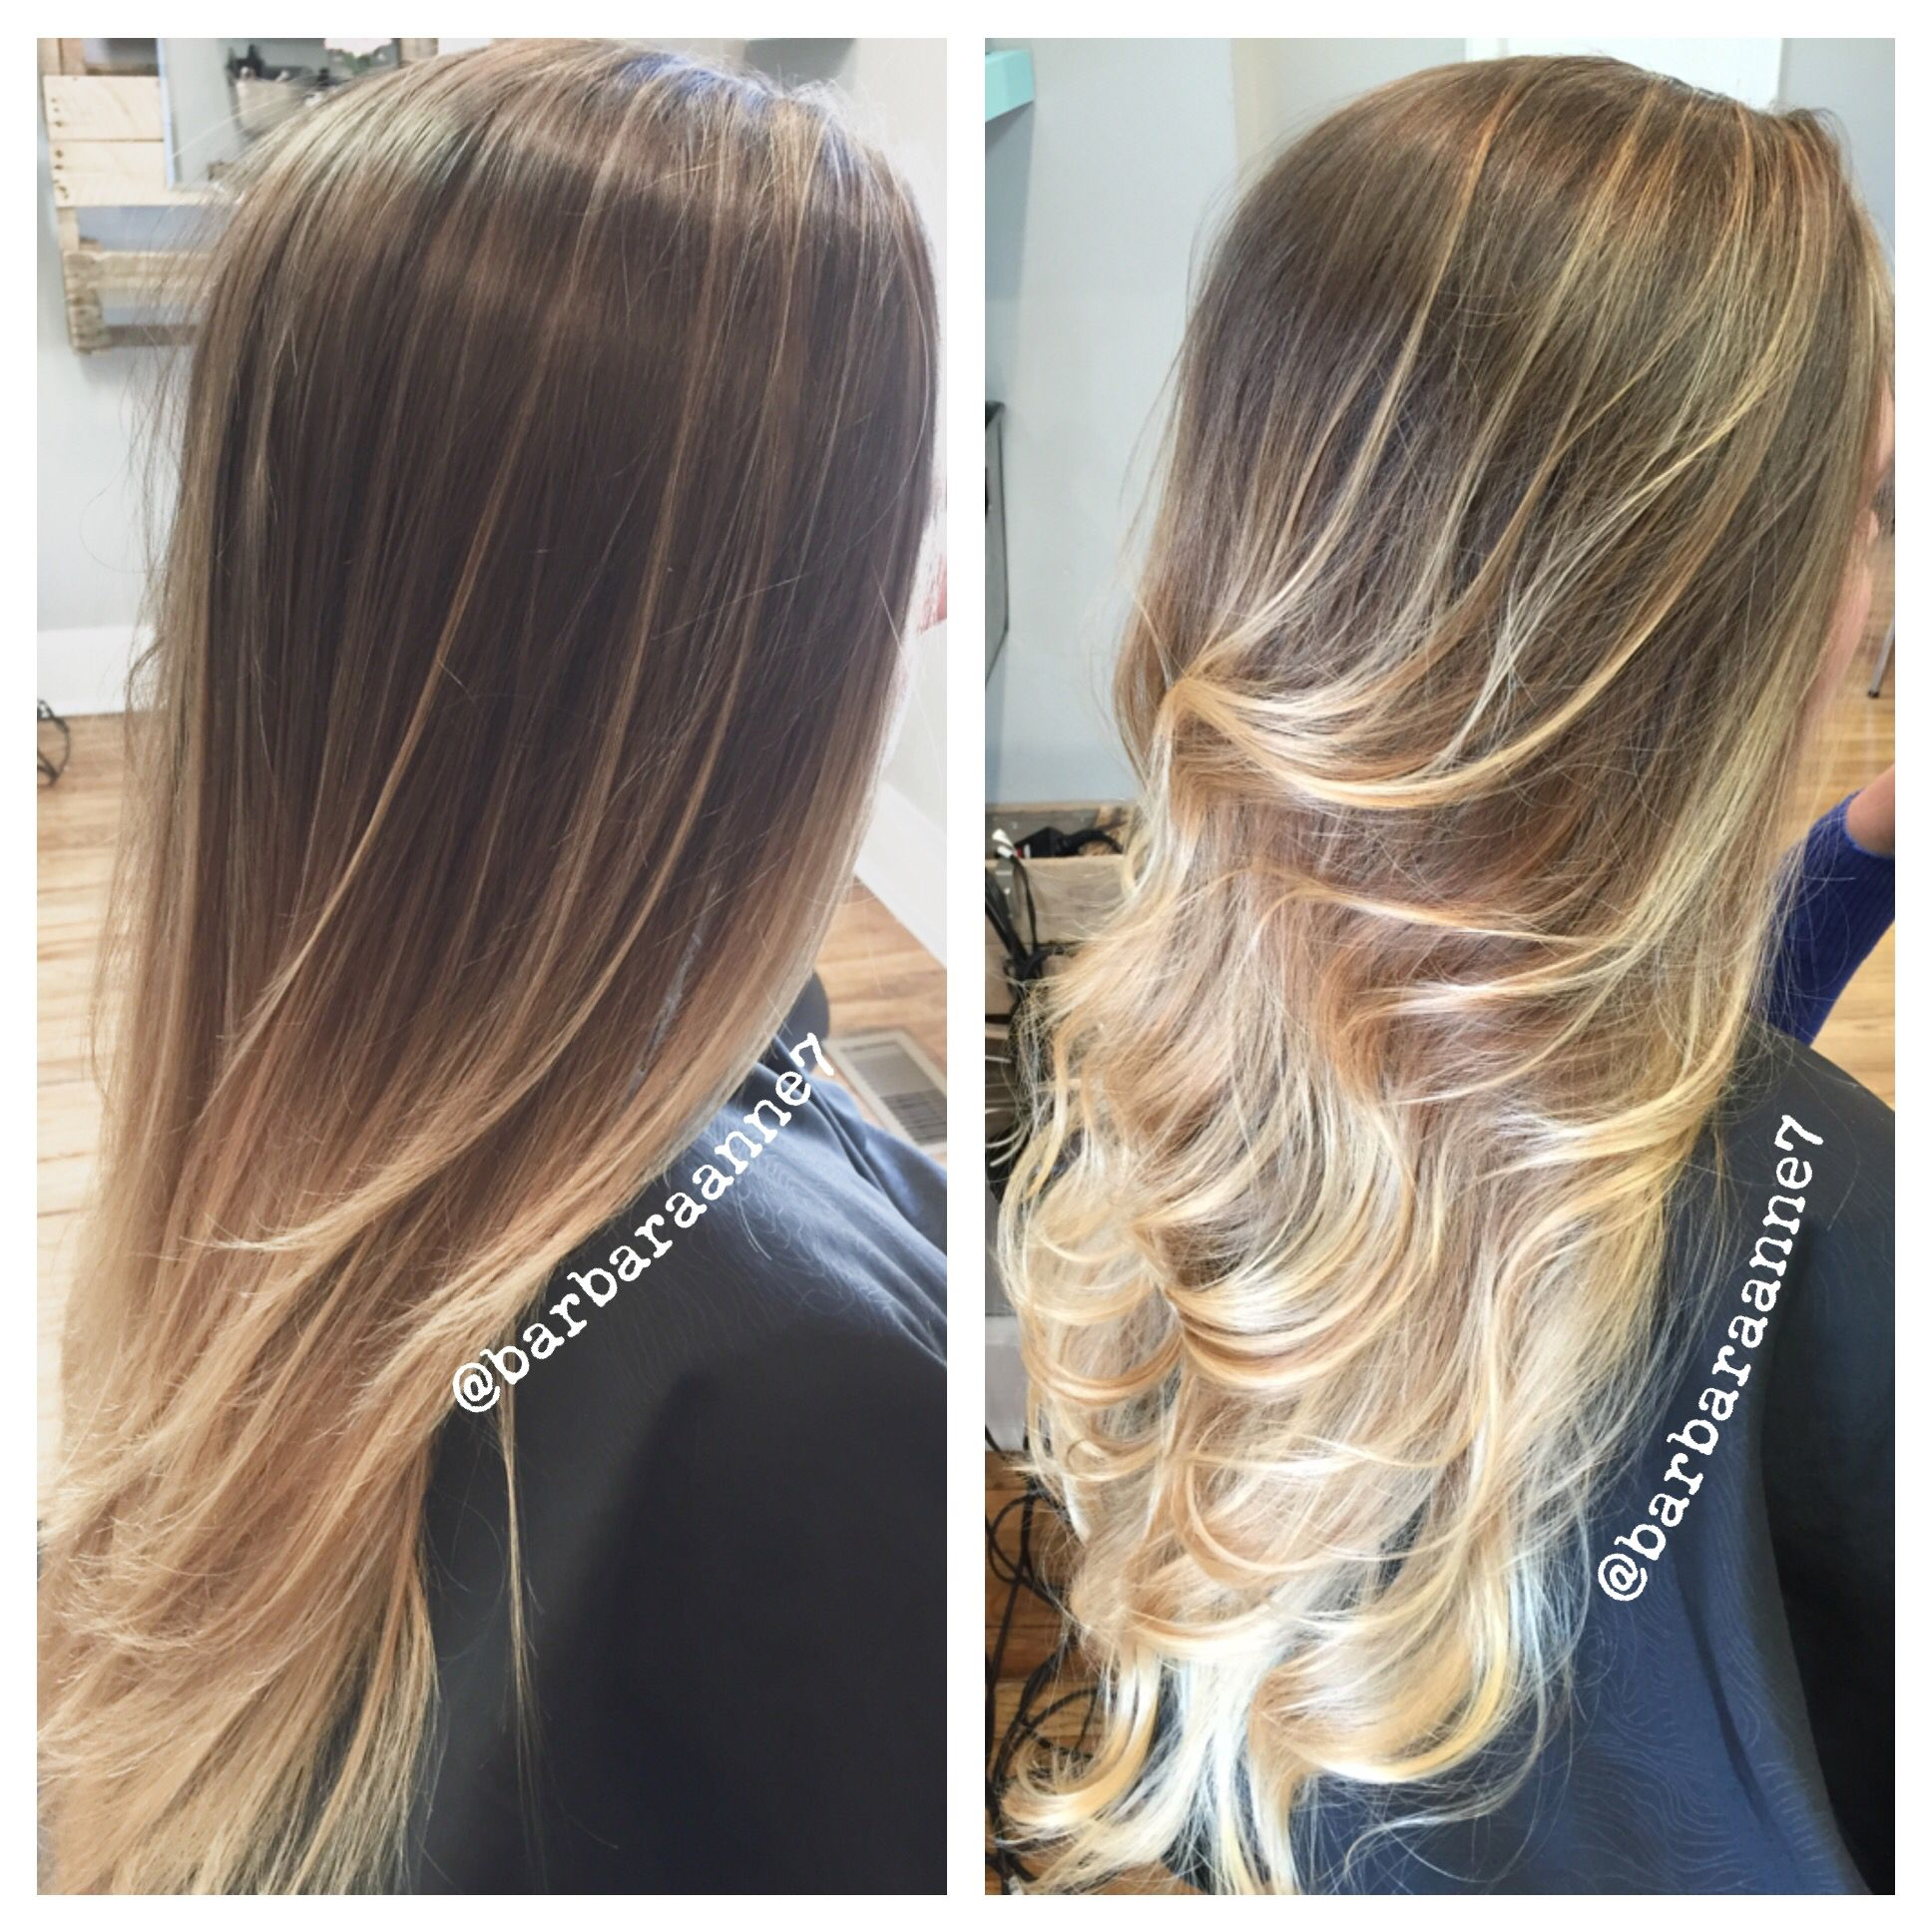 Balayage Ombre Straight Curled Long Hair Blonde Hair Hilights Sun Kissed Kenra B Balayage Straight Hair Balayage Hair Blonde Long Straight Hairstyles